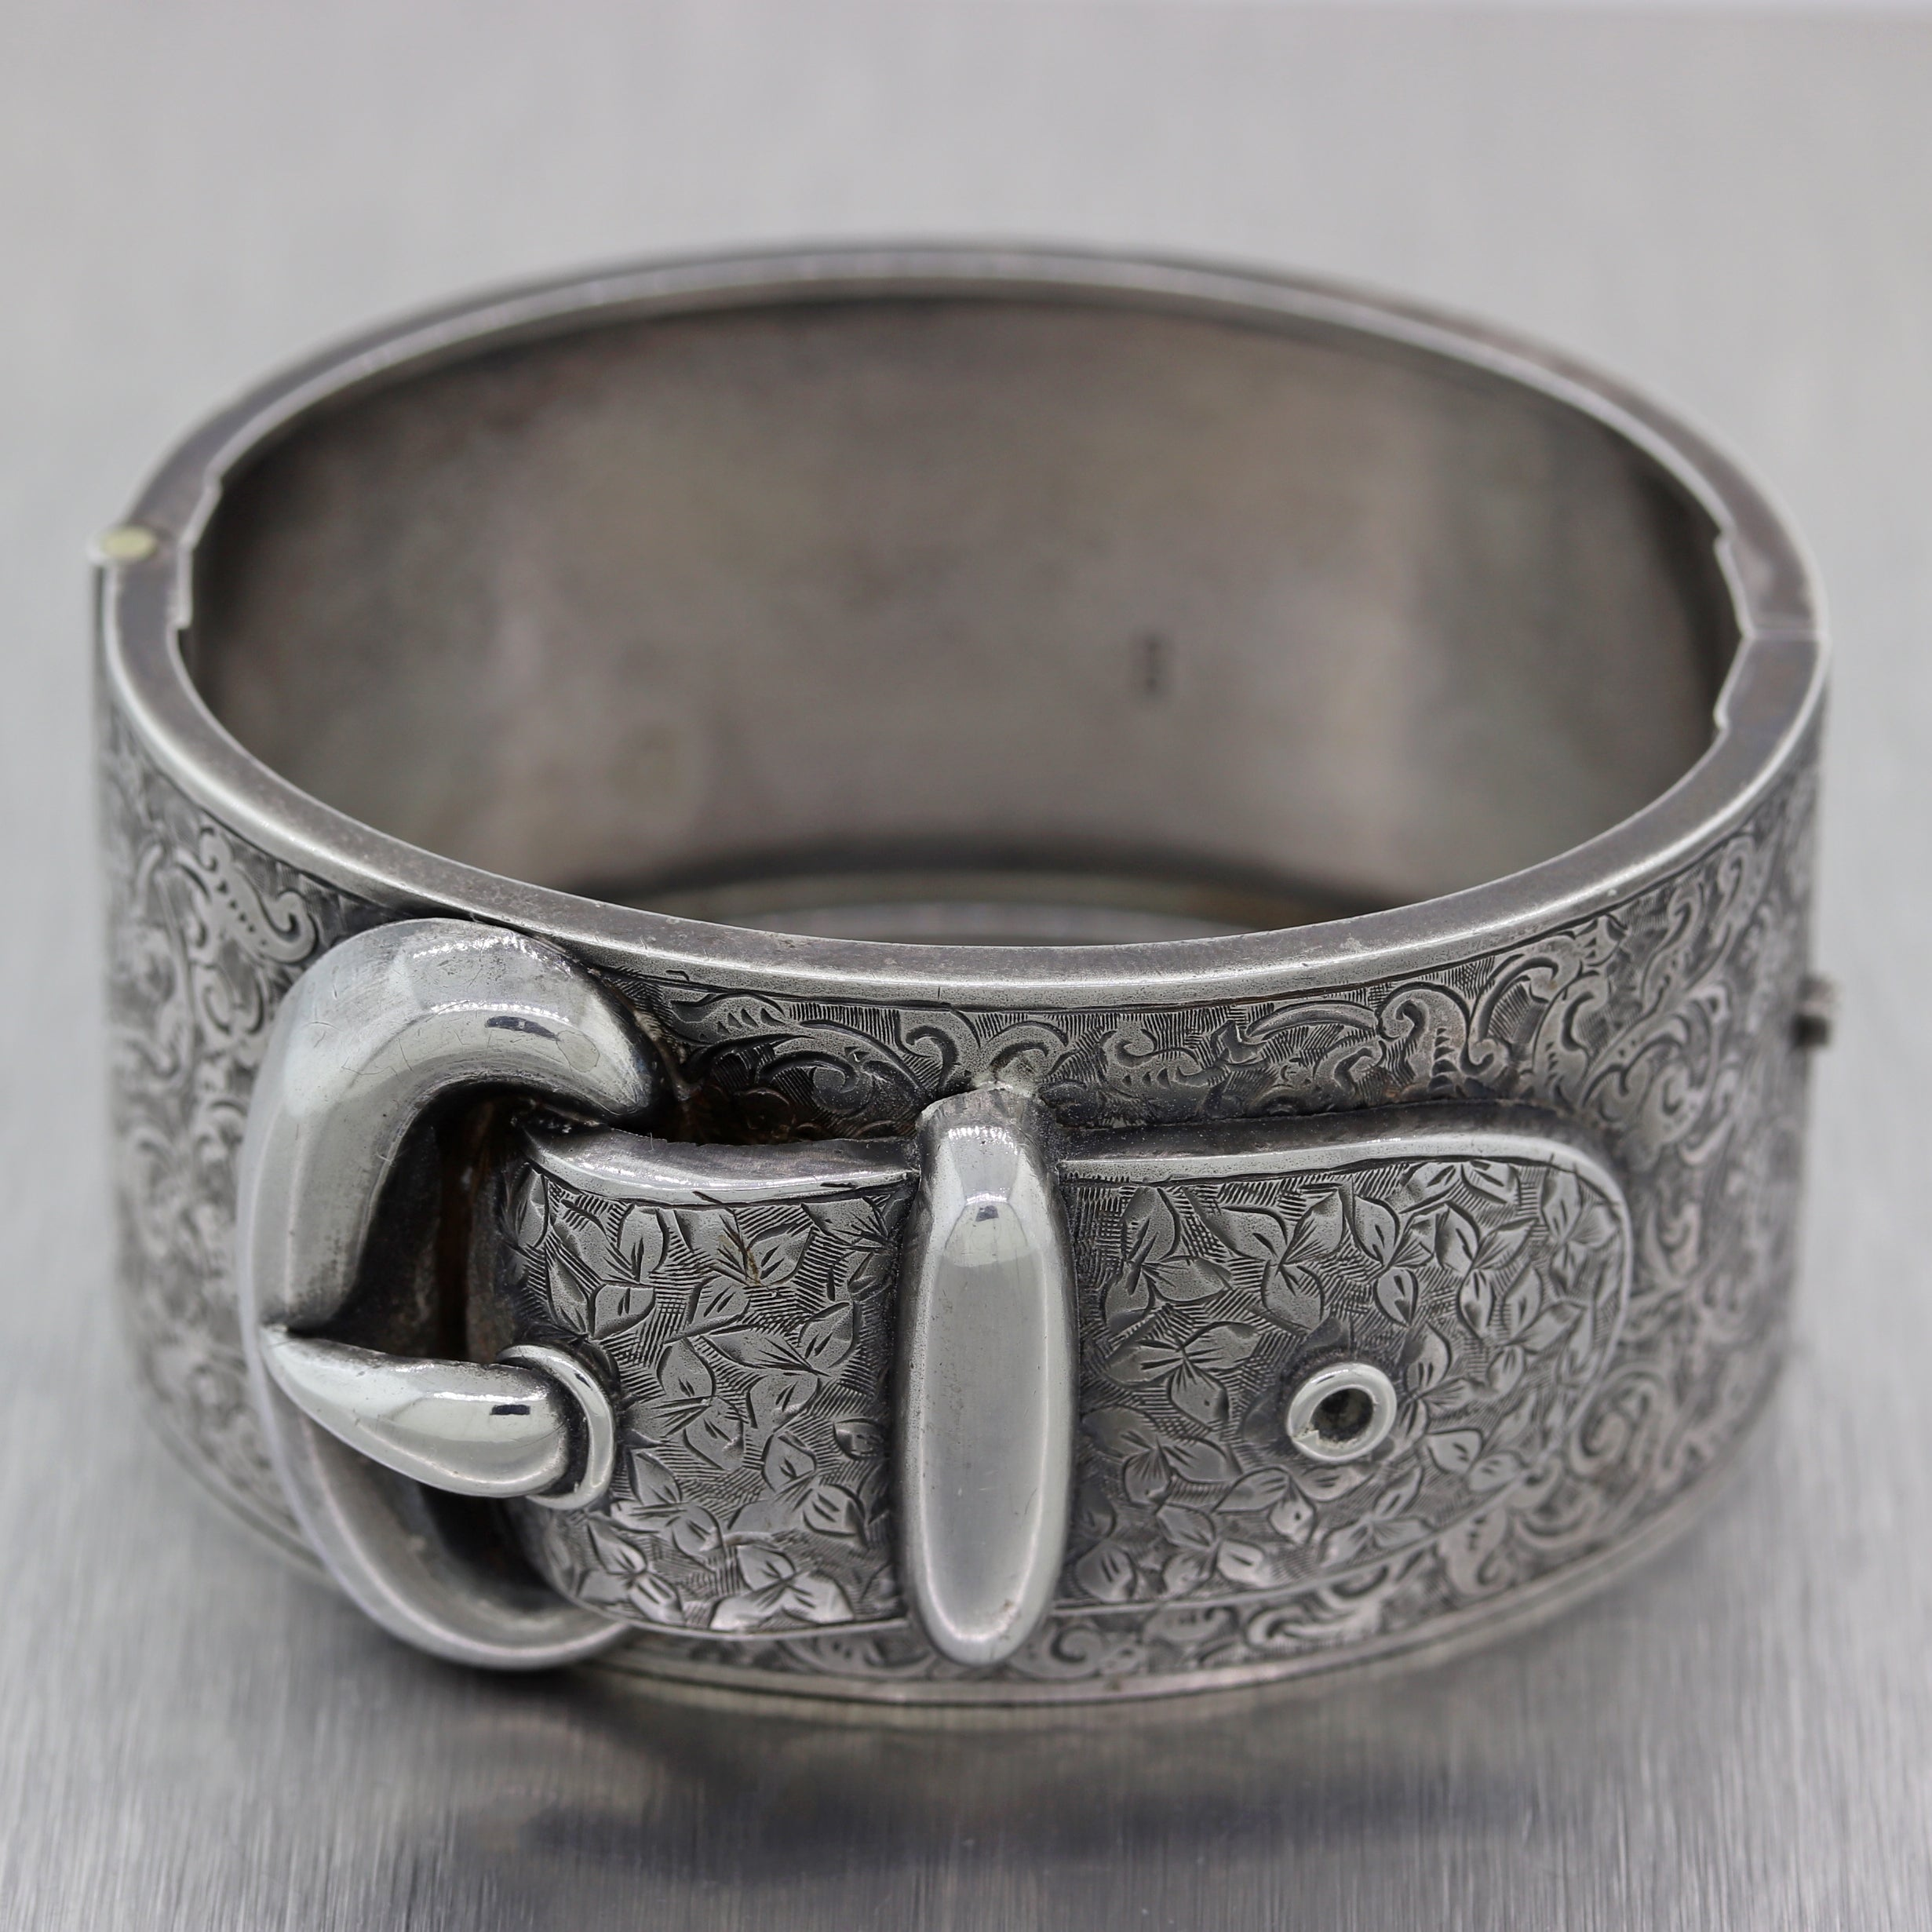 1800's Antique Victorian English Sterling Silver Buckle Bangle Bracelet